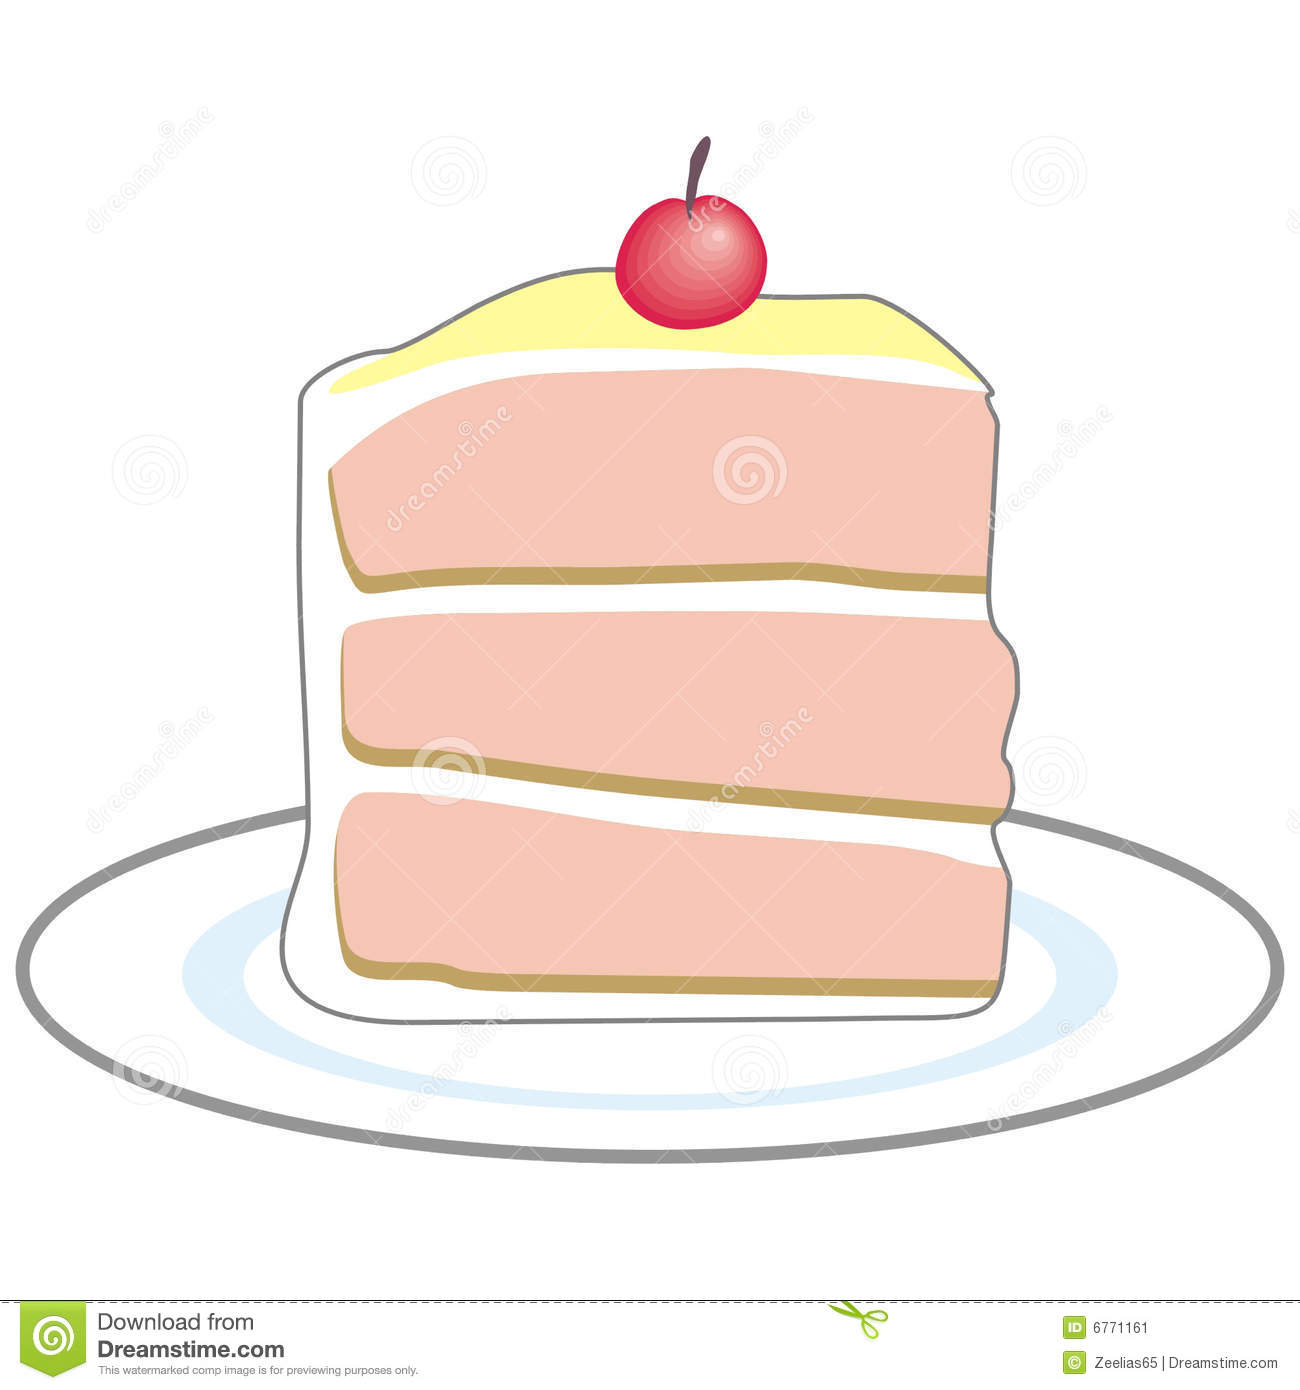 Piece Of Cake Clipart Piece Of Cake Clip Art Piece